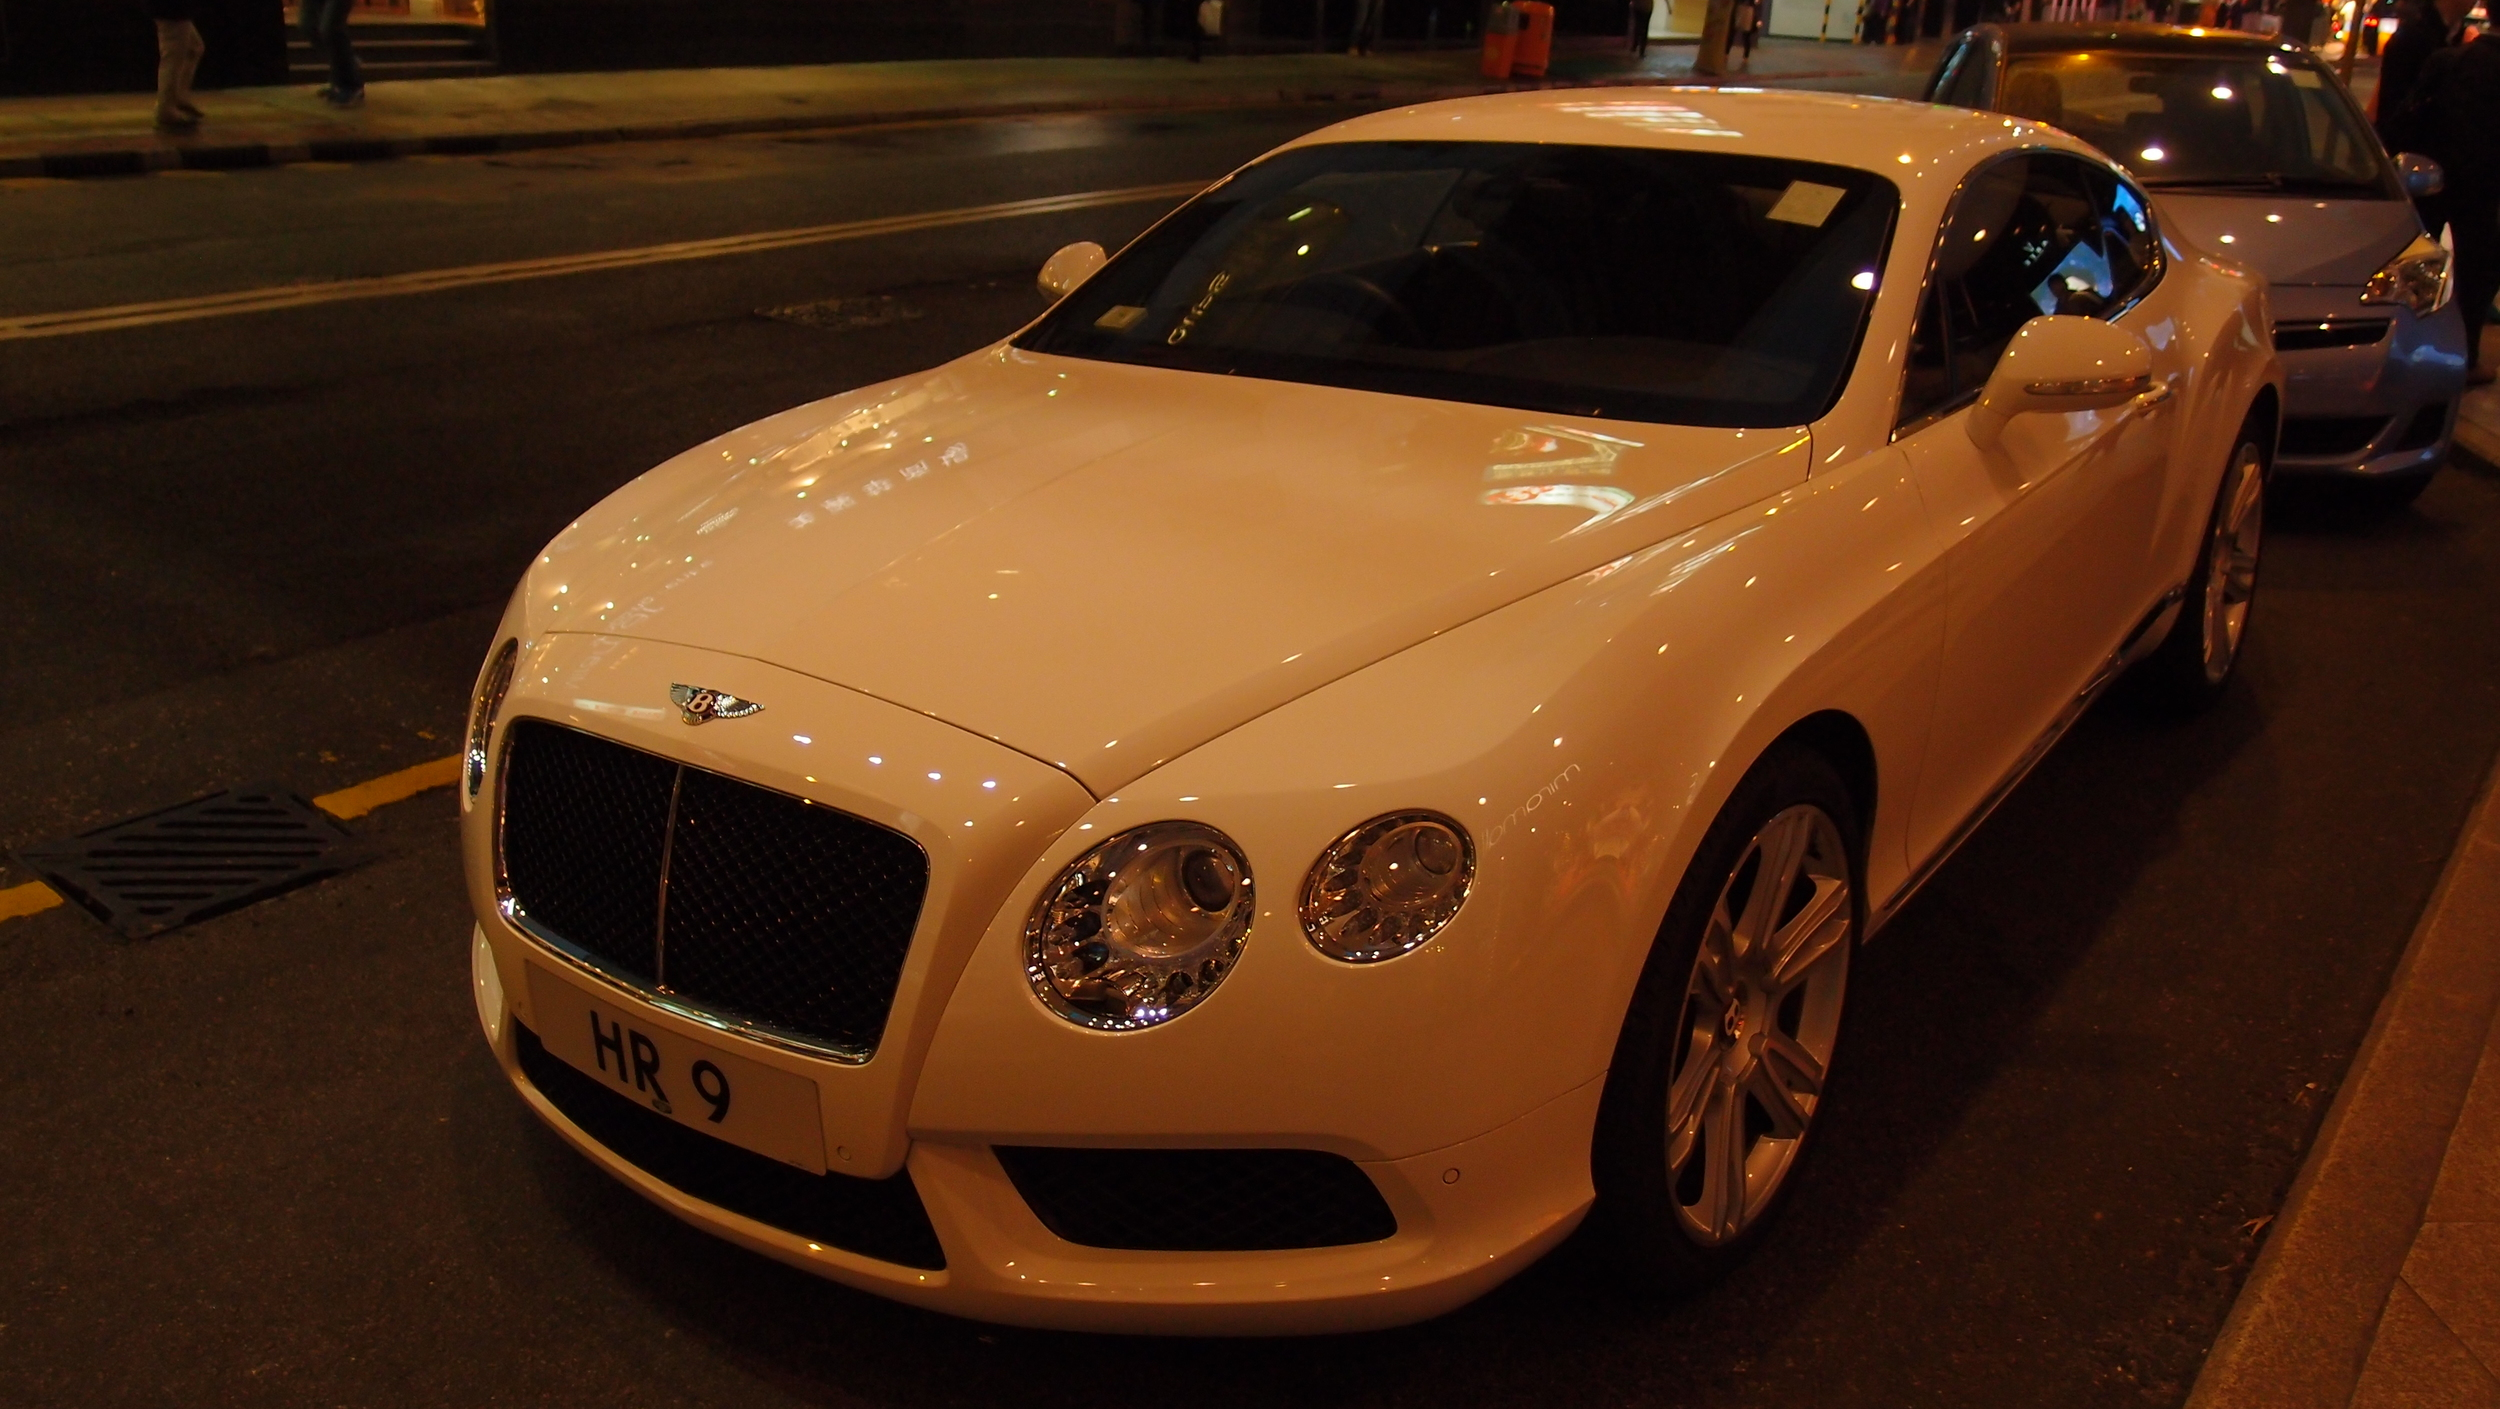 Oh my, a gorgeous Bentley